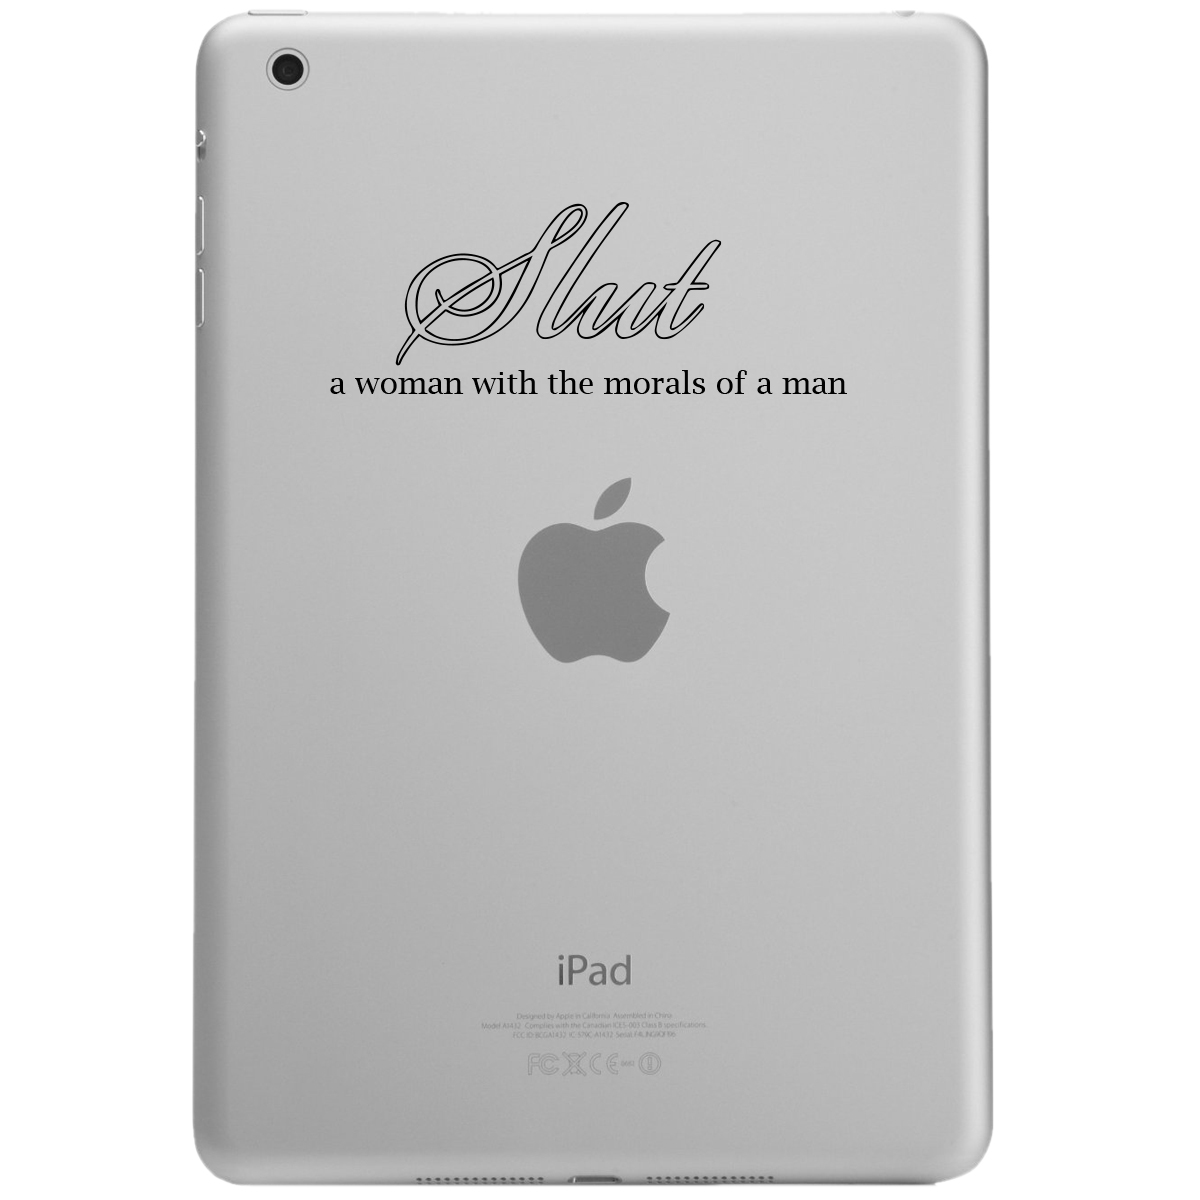 Funny Slut Definition Morals iPad Tablet Vinyl Sticker Decal